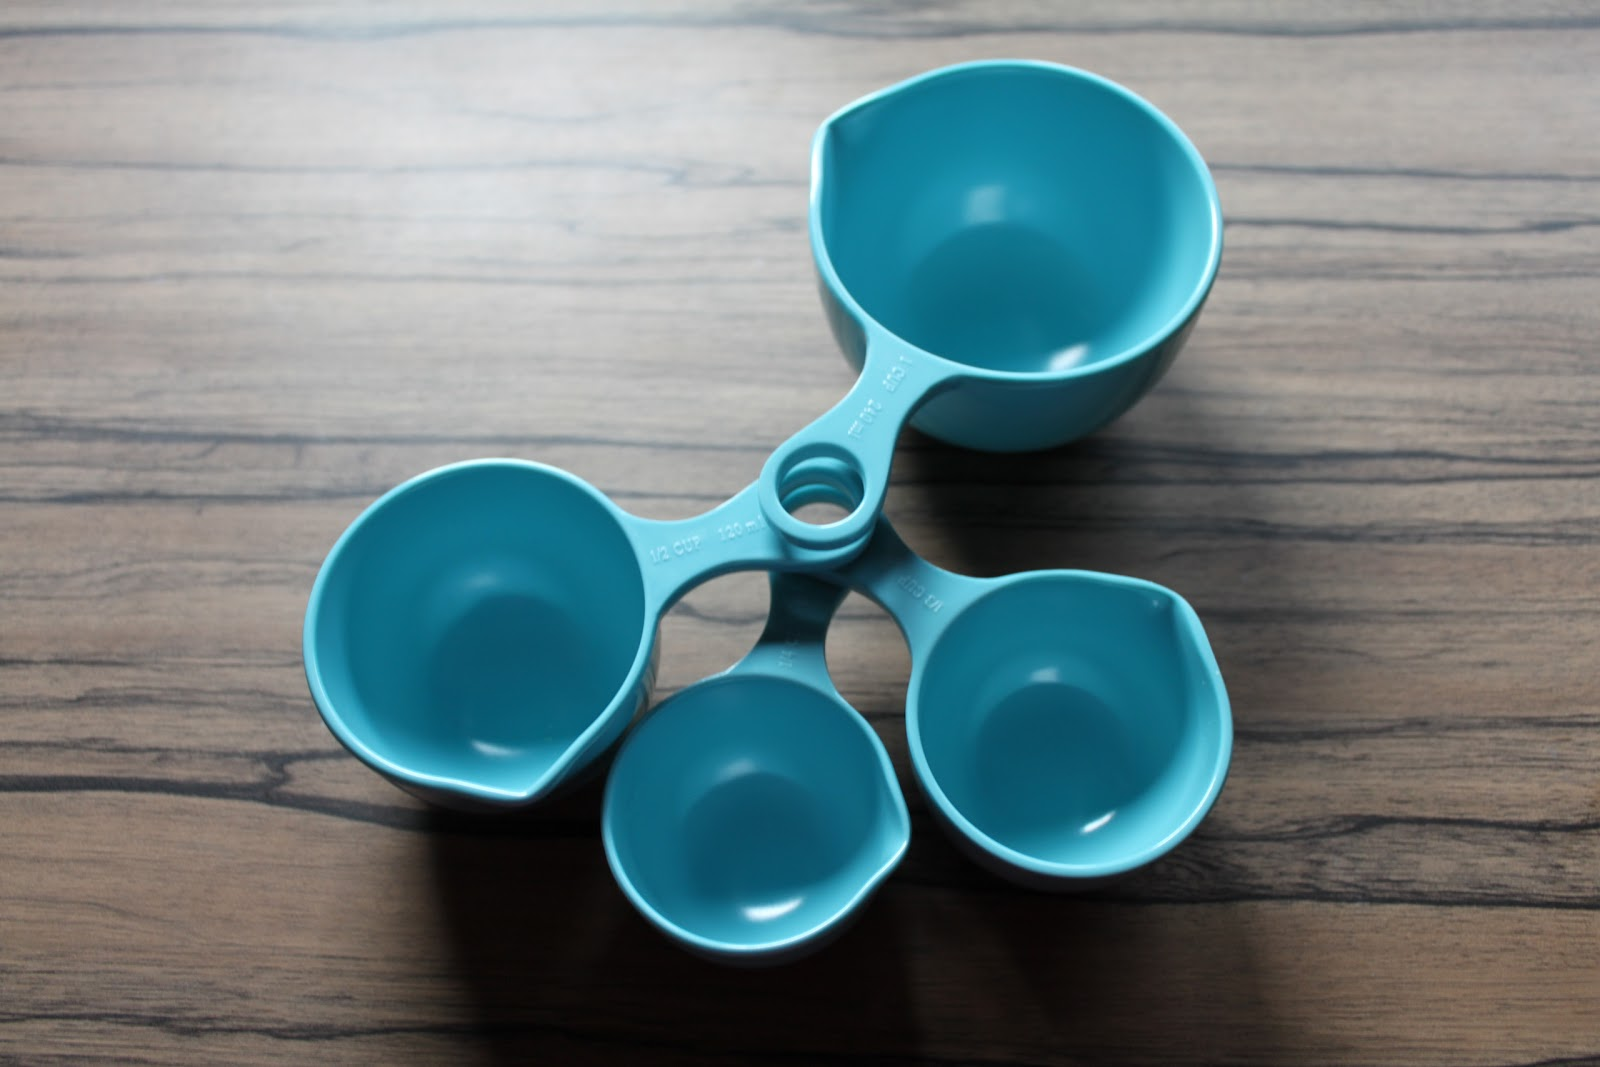 Engelse Keuken Maten Cup : Teaspoon Tablespoon 1 4 Cup